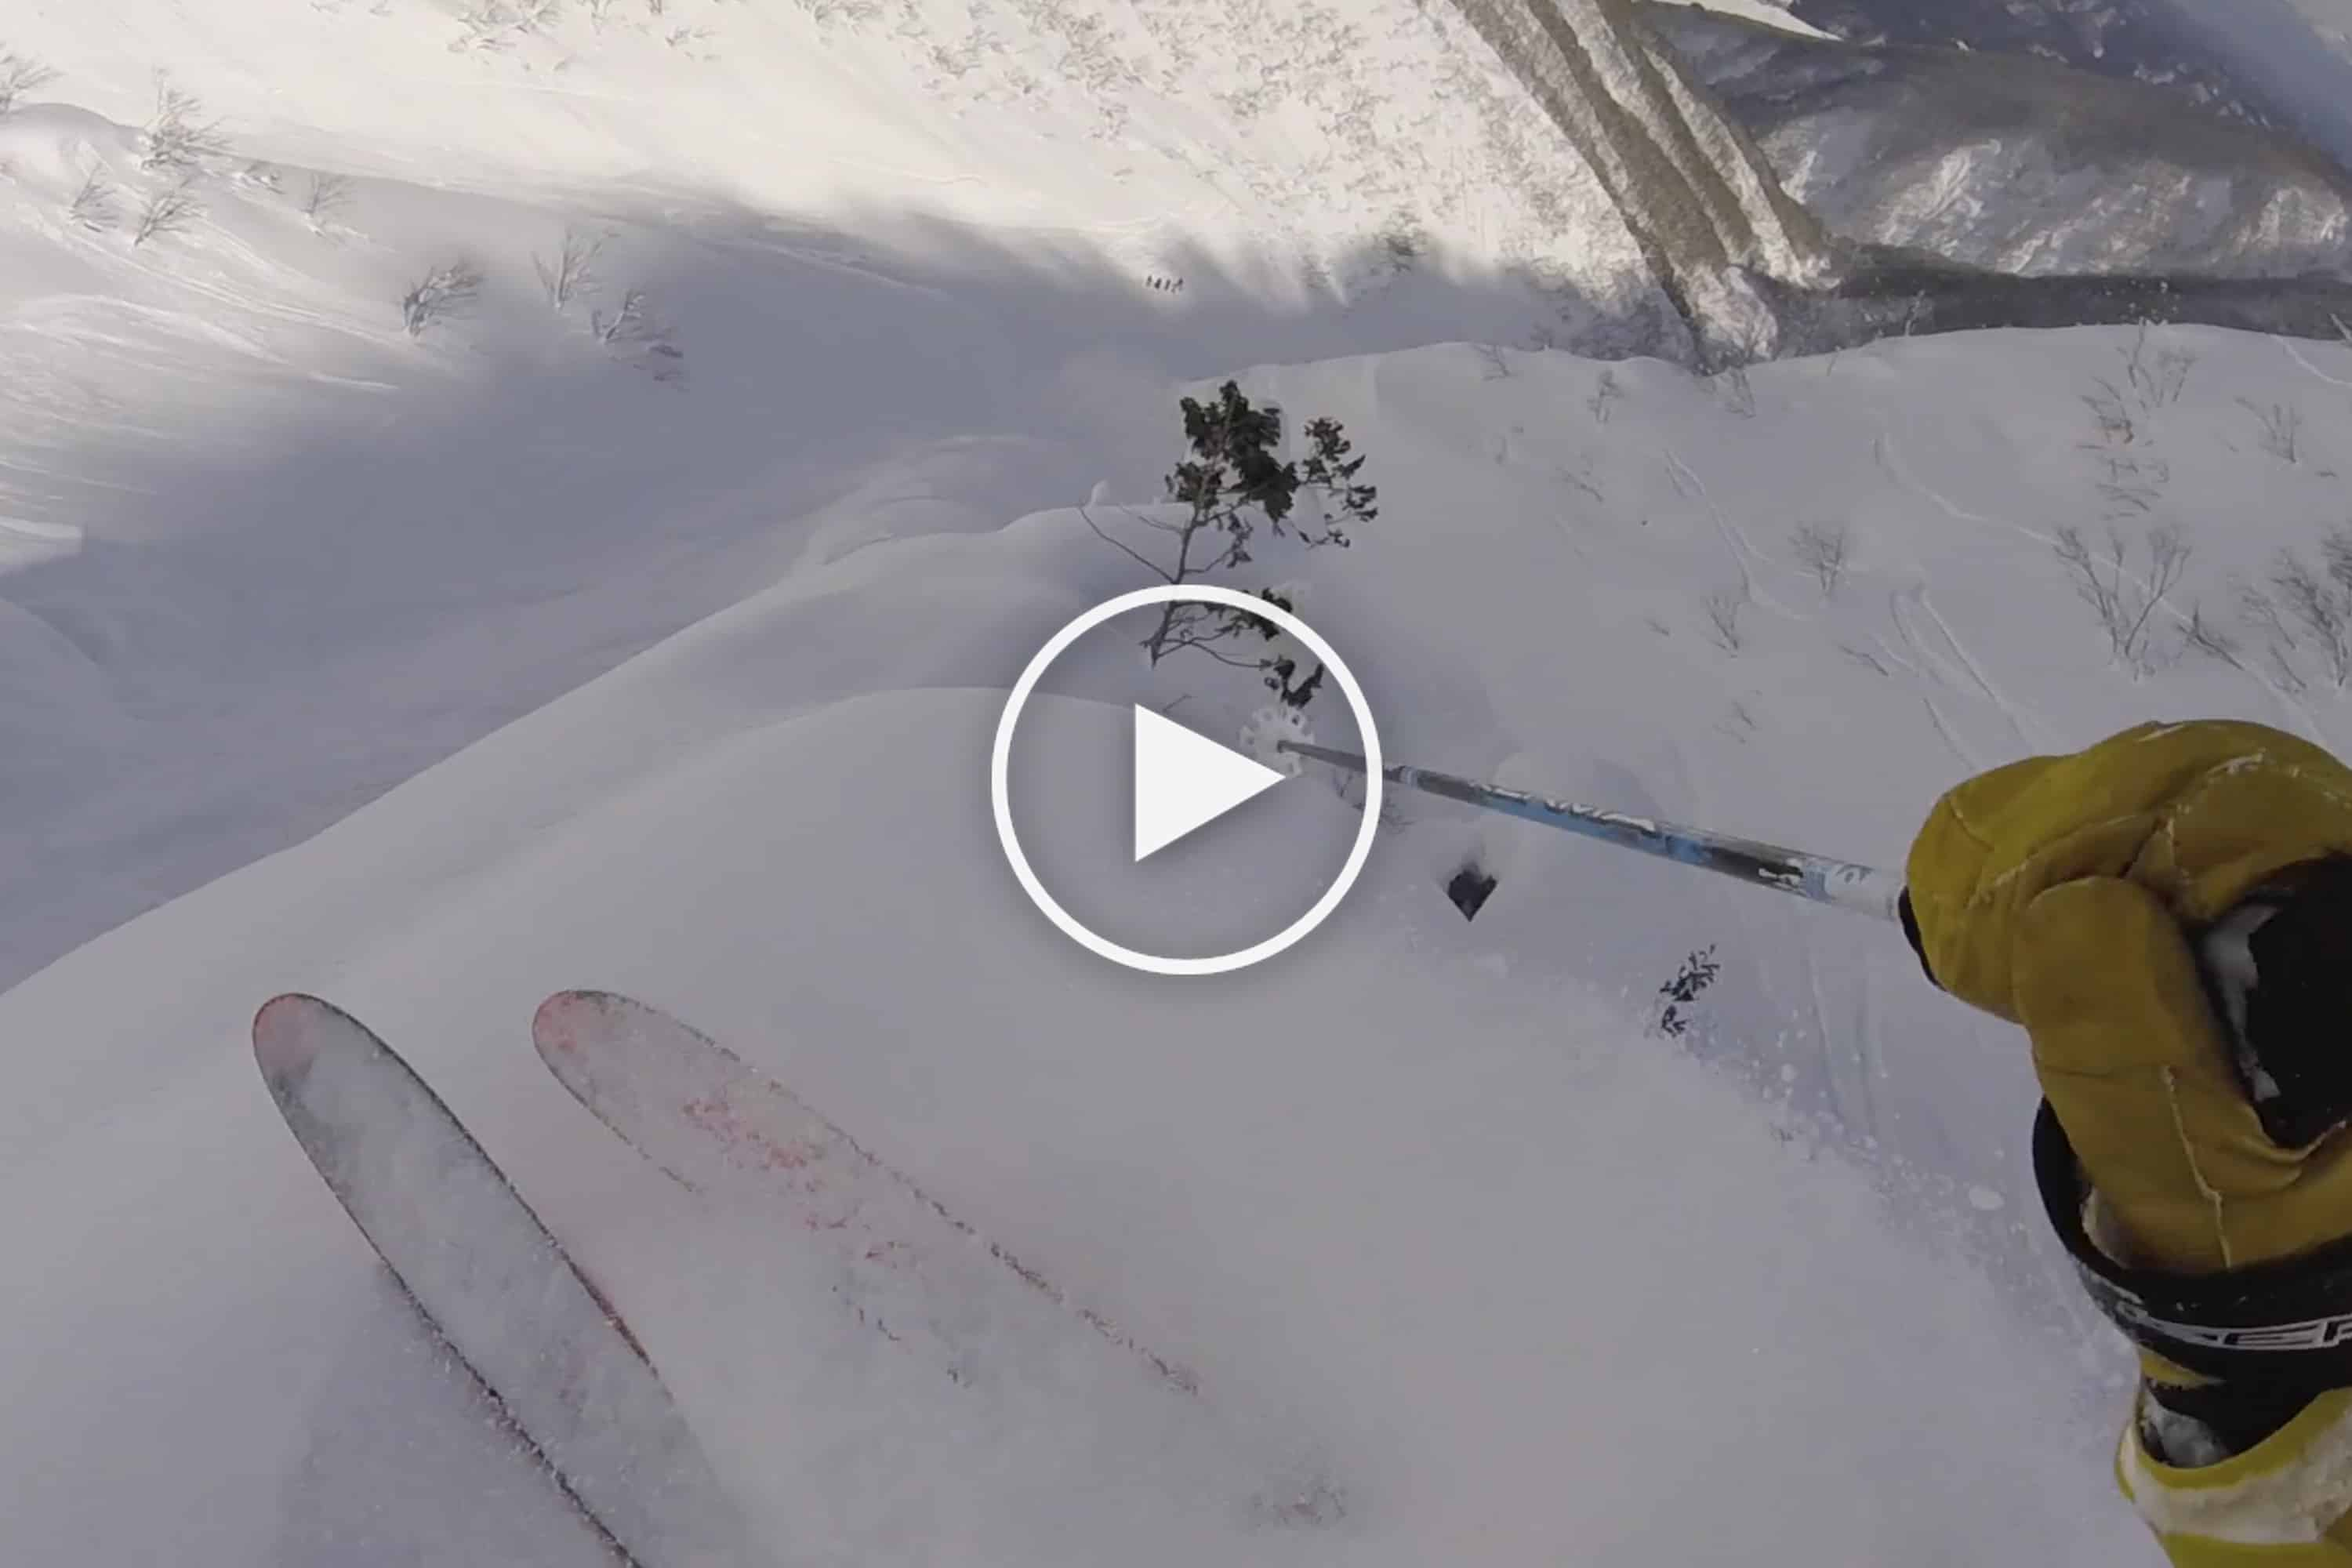 6 Days, 4 Countries – All It Takes To Make One Of The Best Season Edits We've Seen – Video